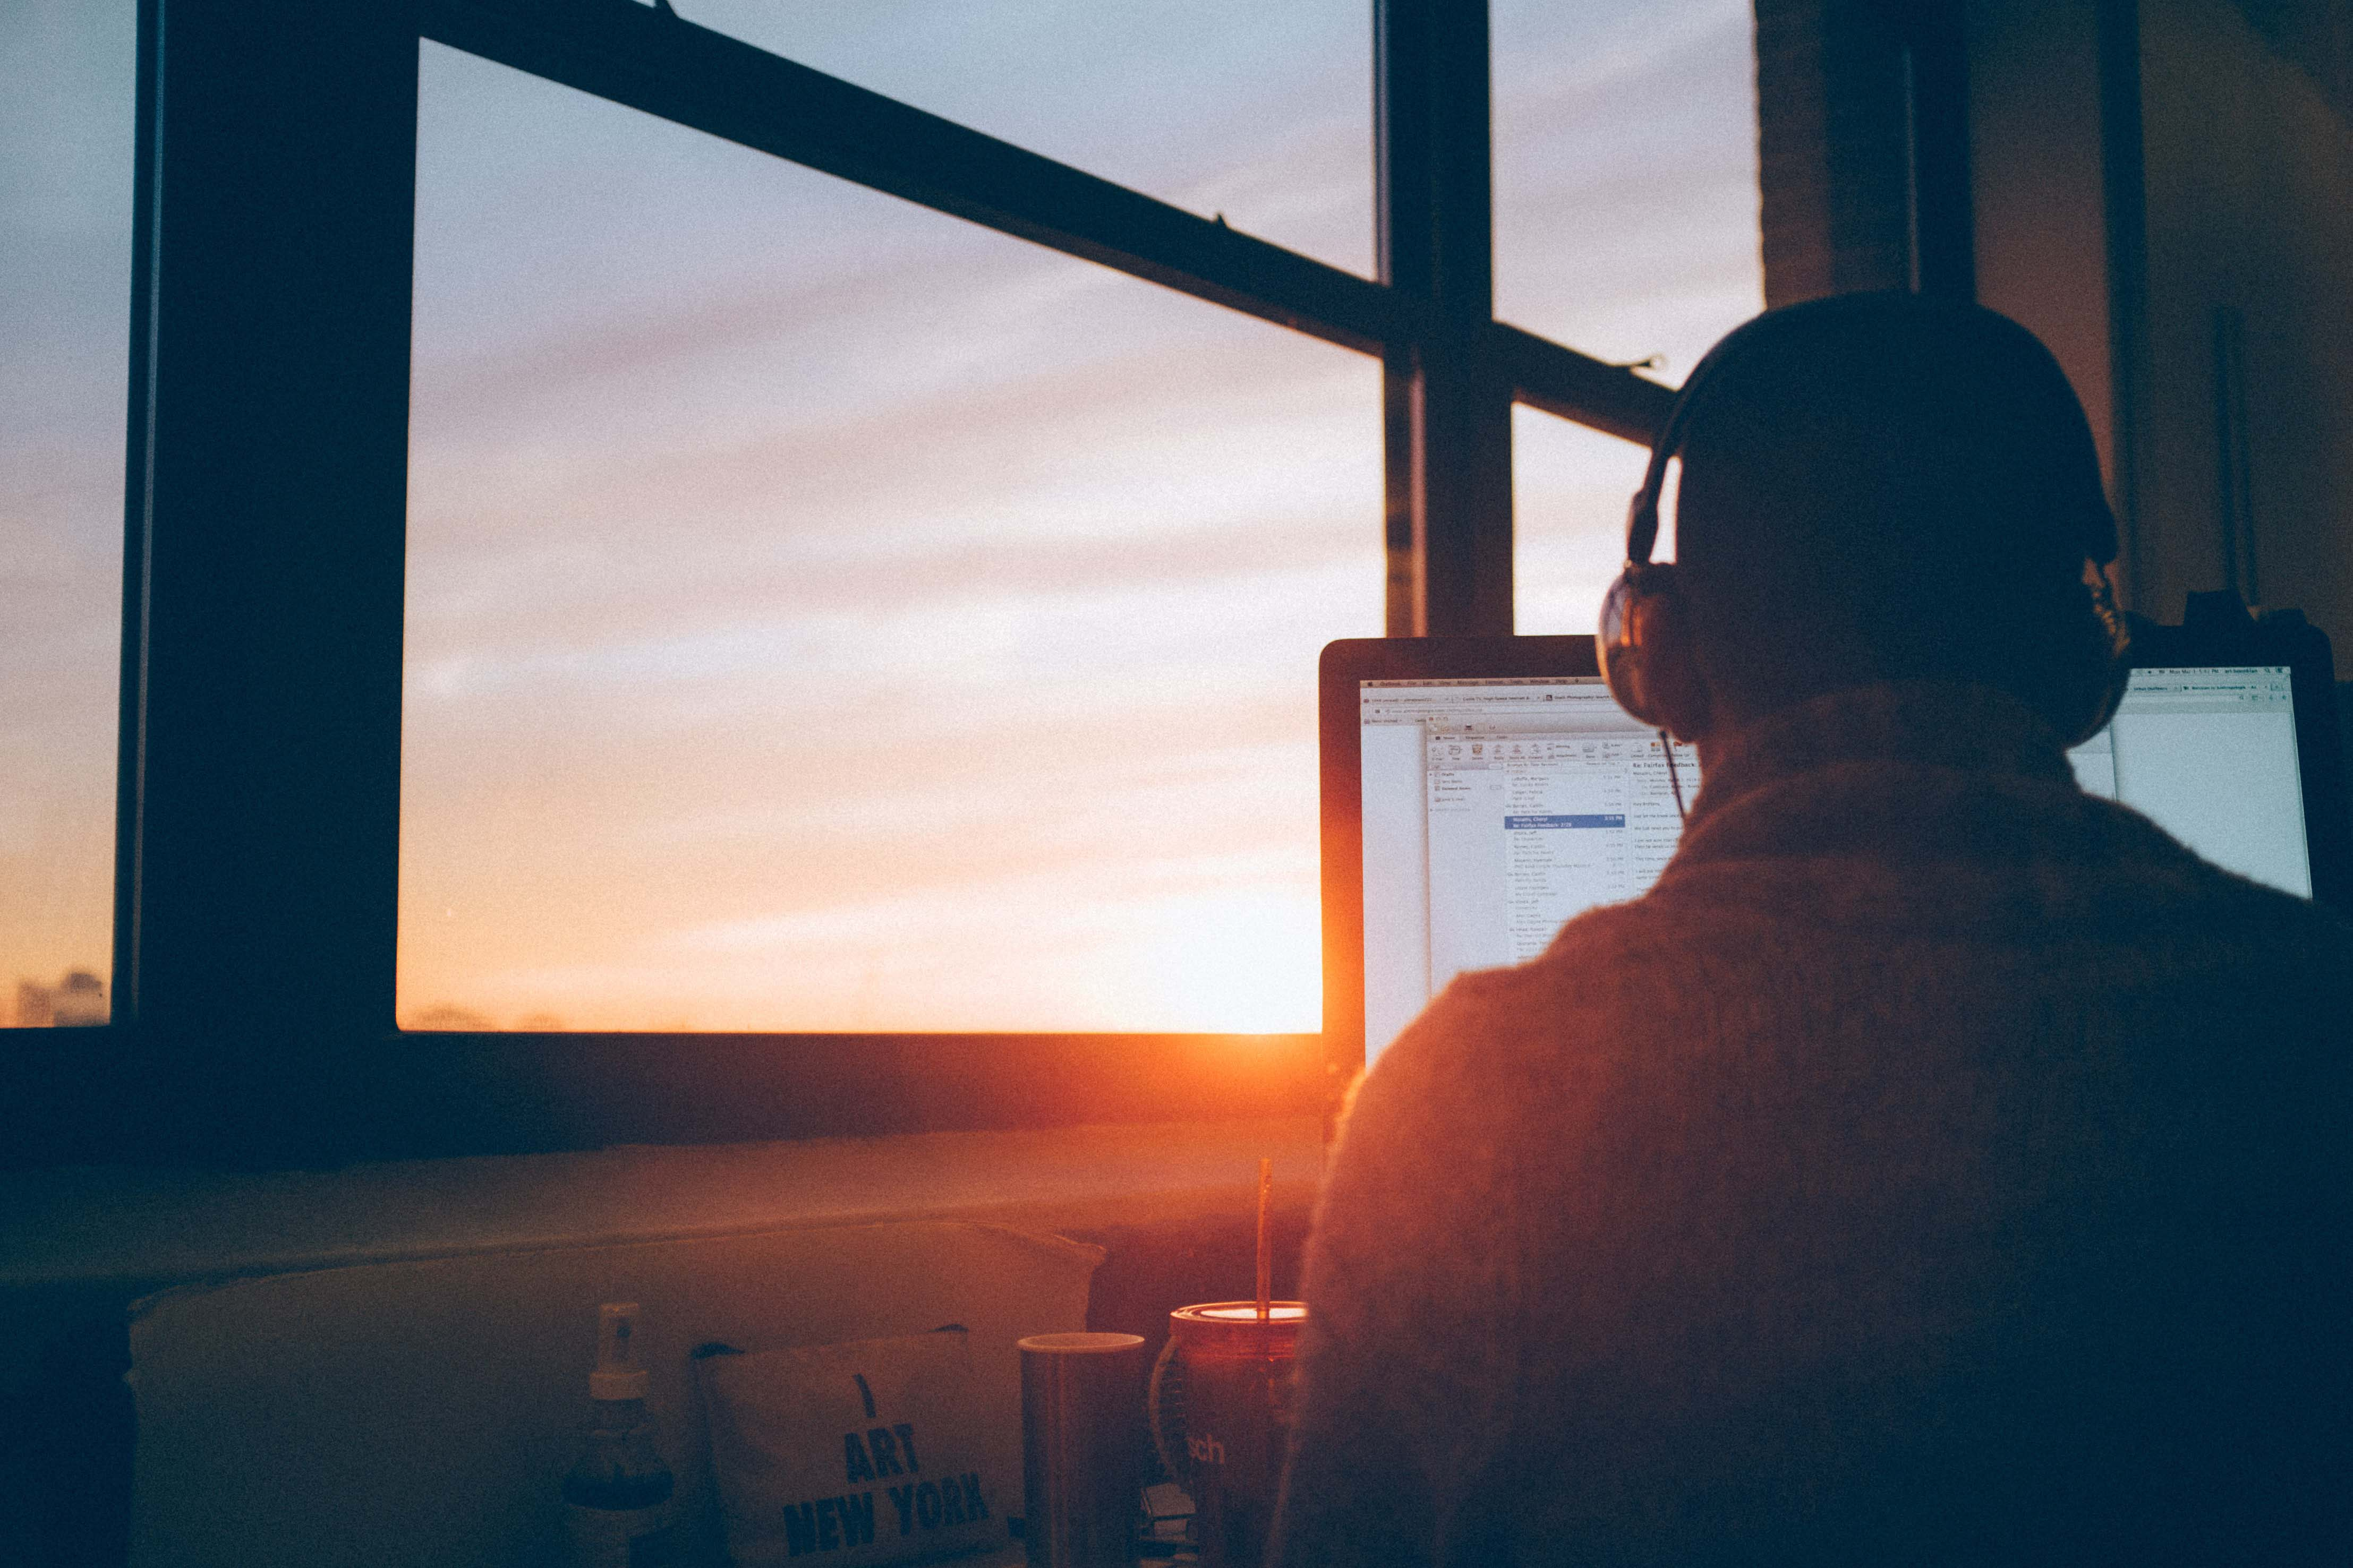 Man wearing headphones sitting in front of a computer with his back to the camera. He is sitting at a window and the sun is setting.